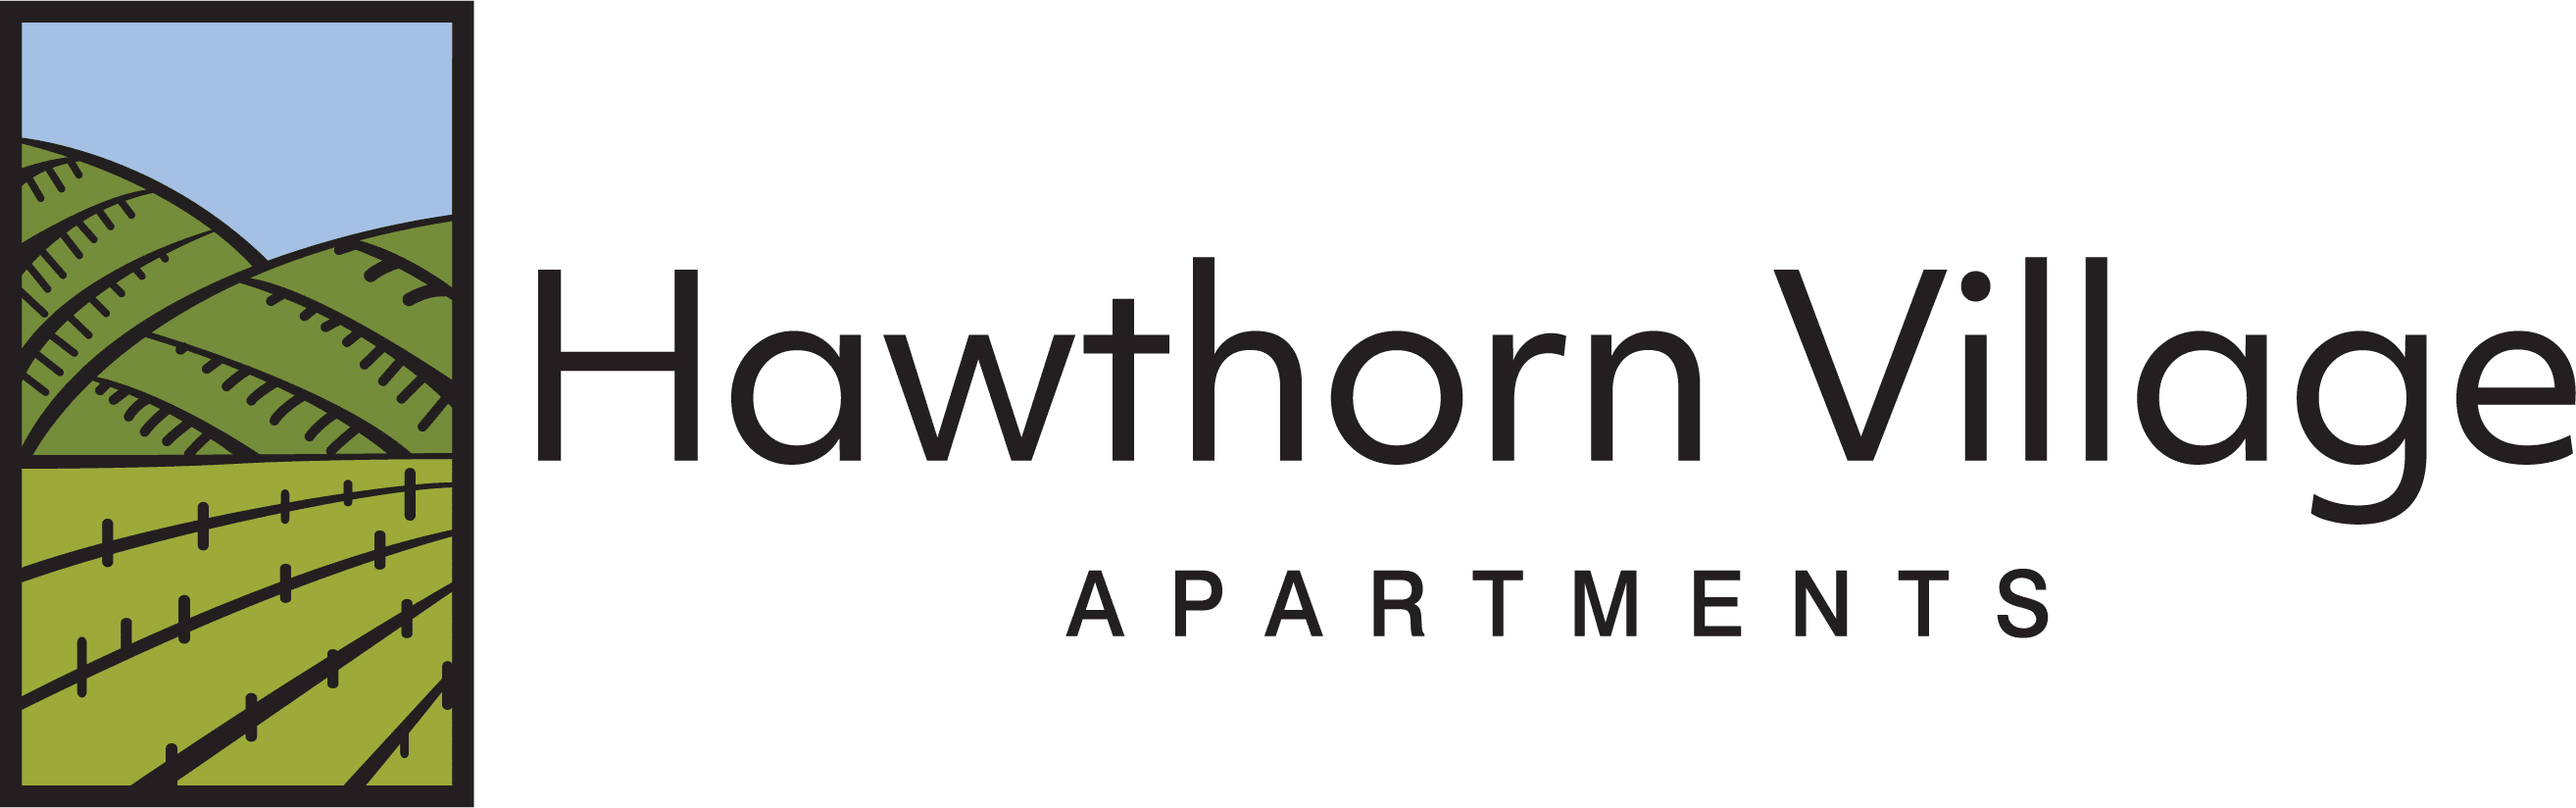 Hawthorn Village Apartments logo